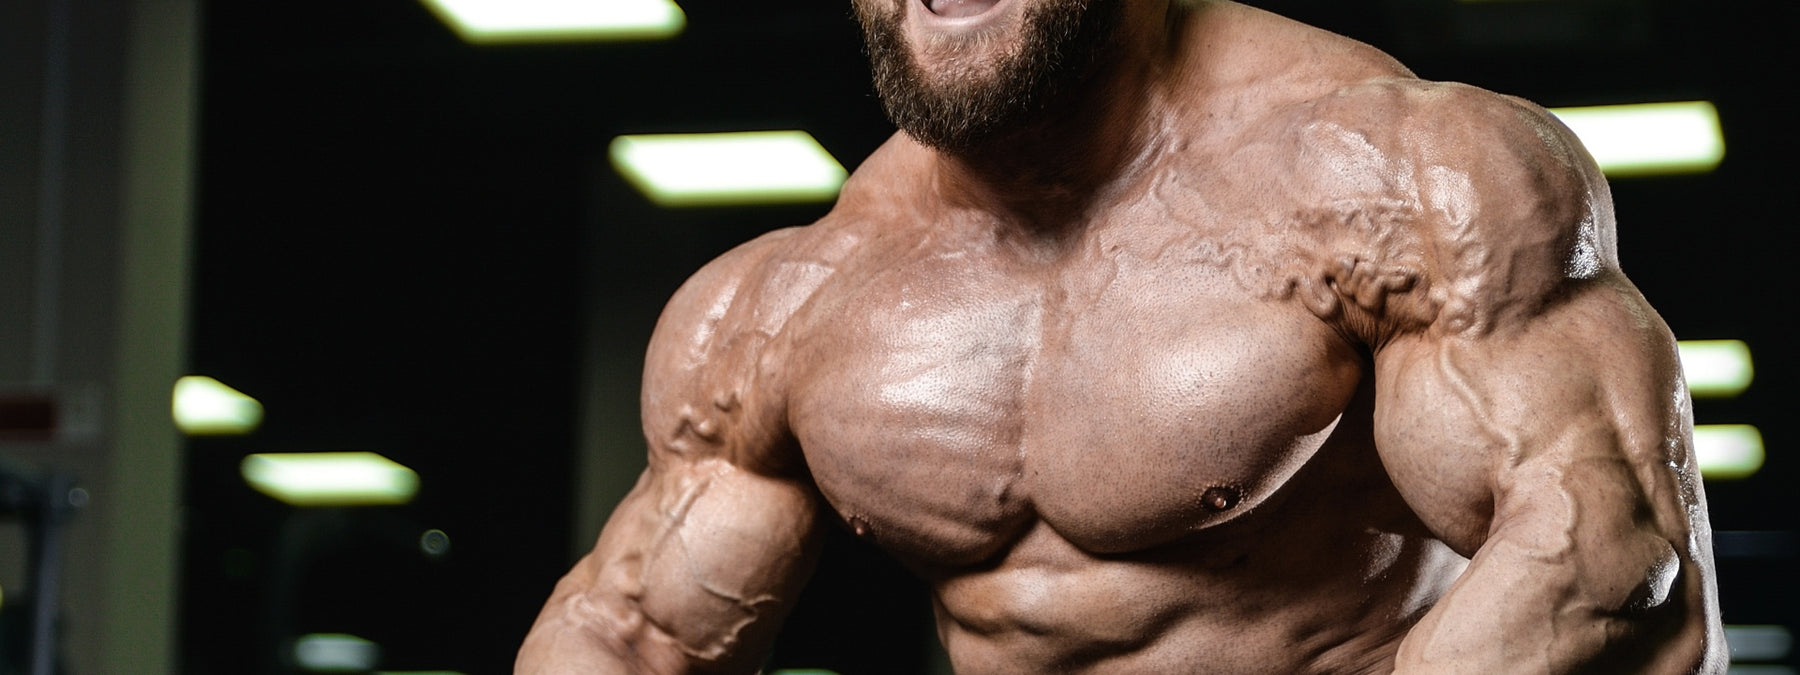 Build a Monster Powerbuilding: 3 Day Workout Routine